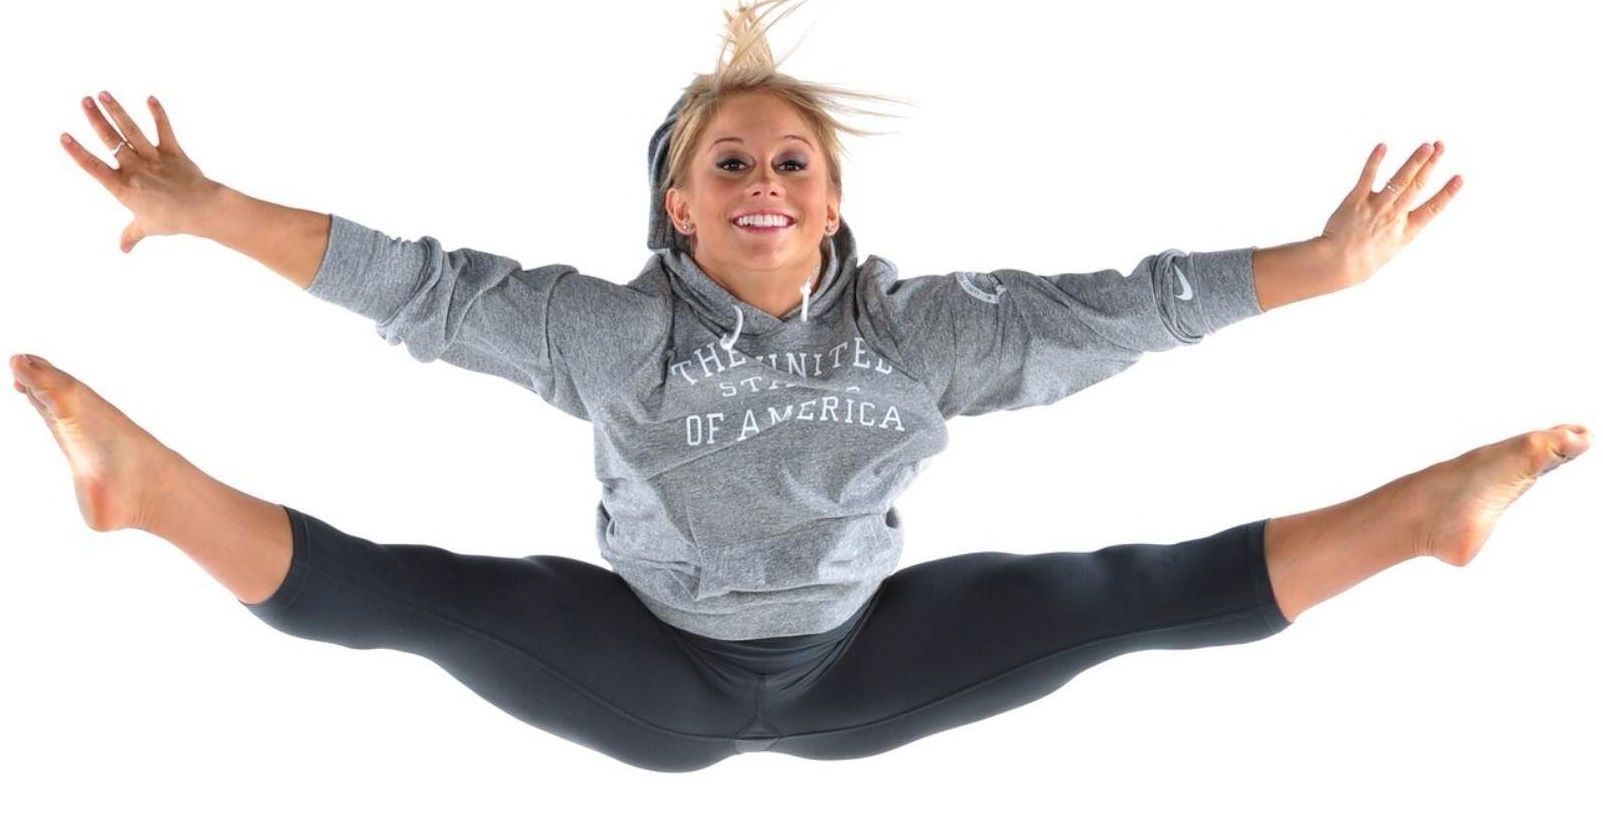 Gymnast shawn johnson cameltoe